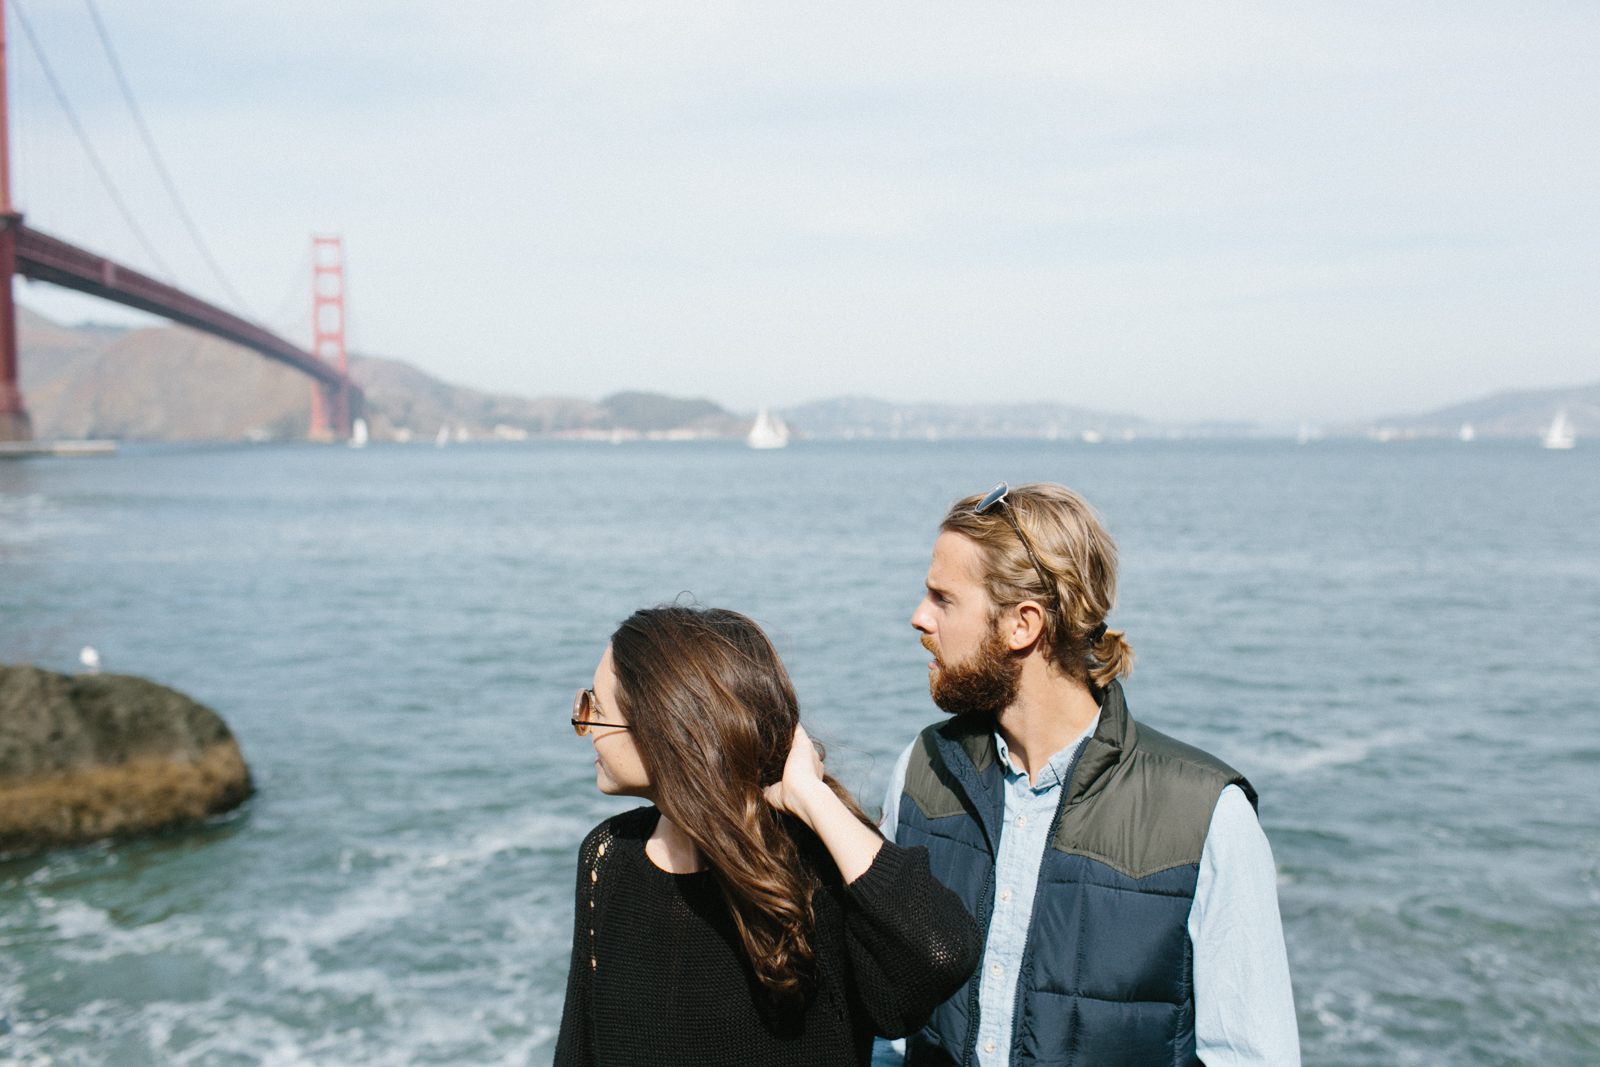 San Francisco Engagement Photography by Bay Area Wedding Photographer Mae Stier-008.jpg